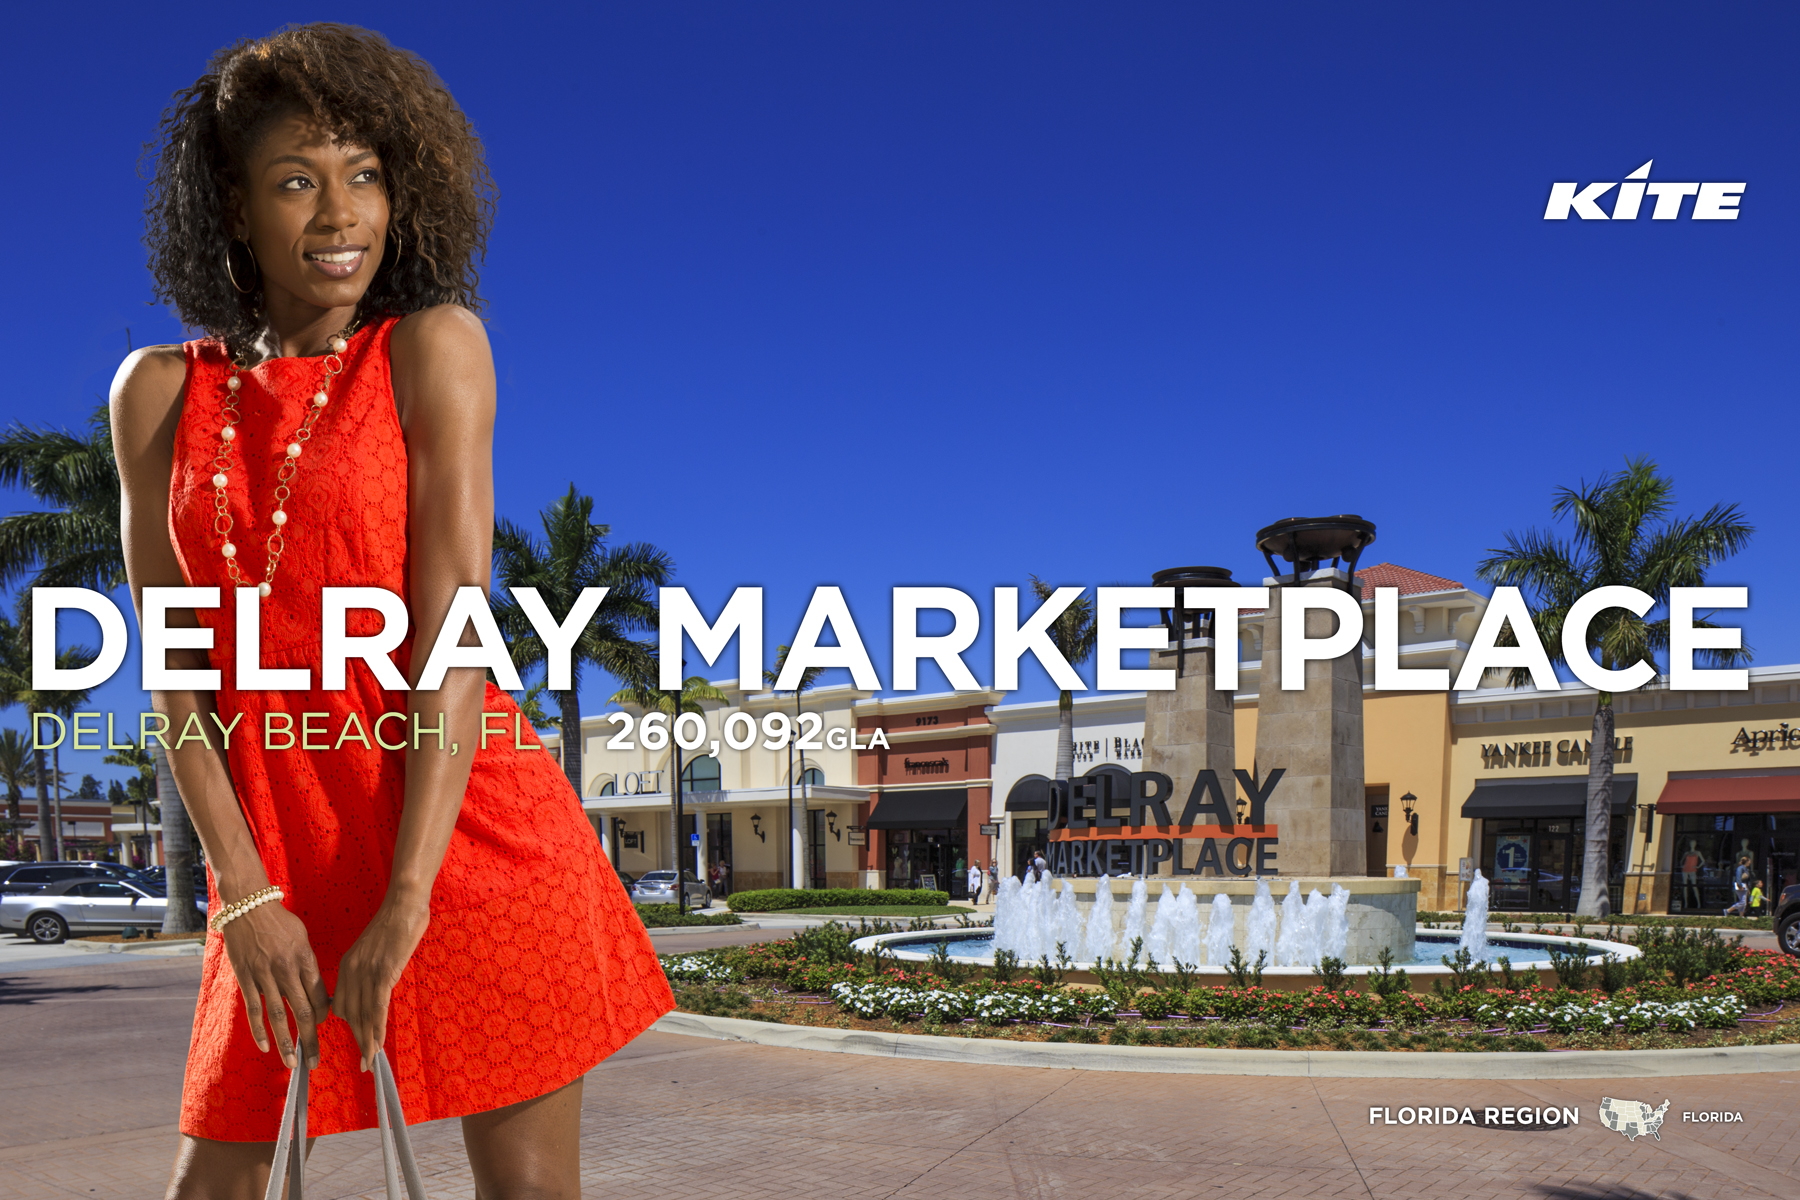 DELRAY MARKETPLACE - Delray Beach, FL  On-site Photography / Promotional Signage / Leasing Collateral